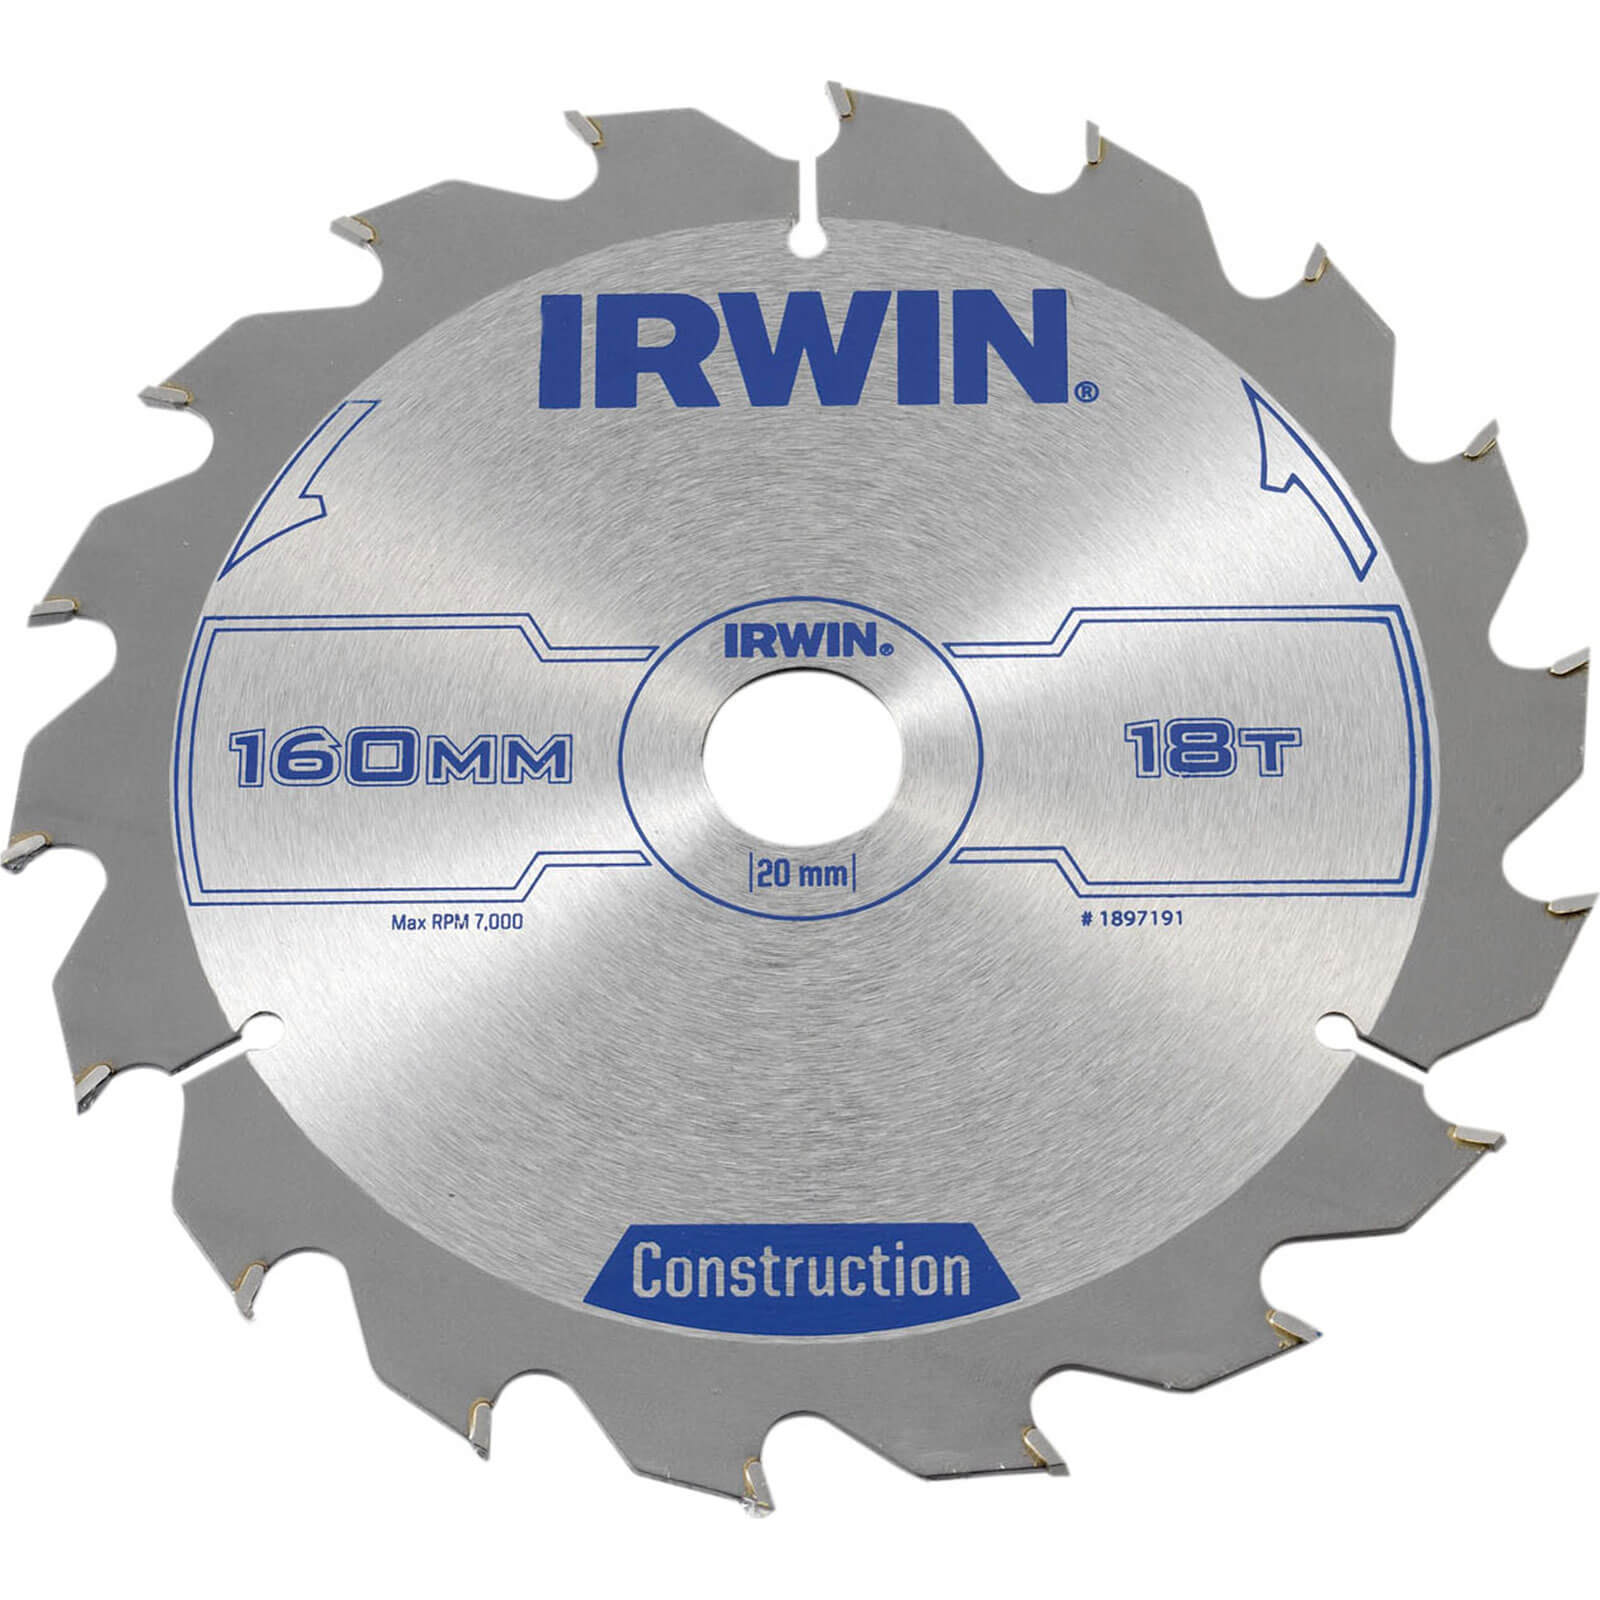 Image of Irwin ATB Construction Circular Saw Blade 160mm 18T 20mm